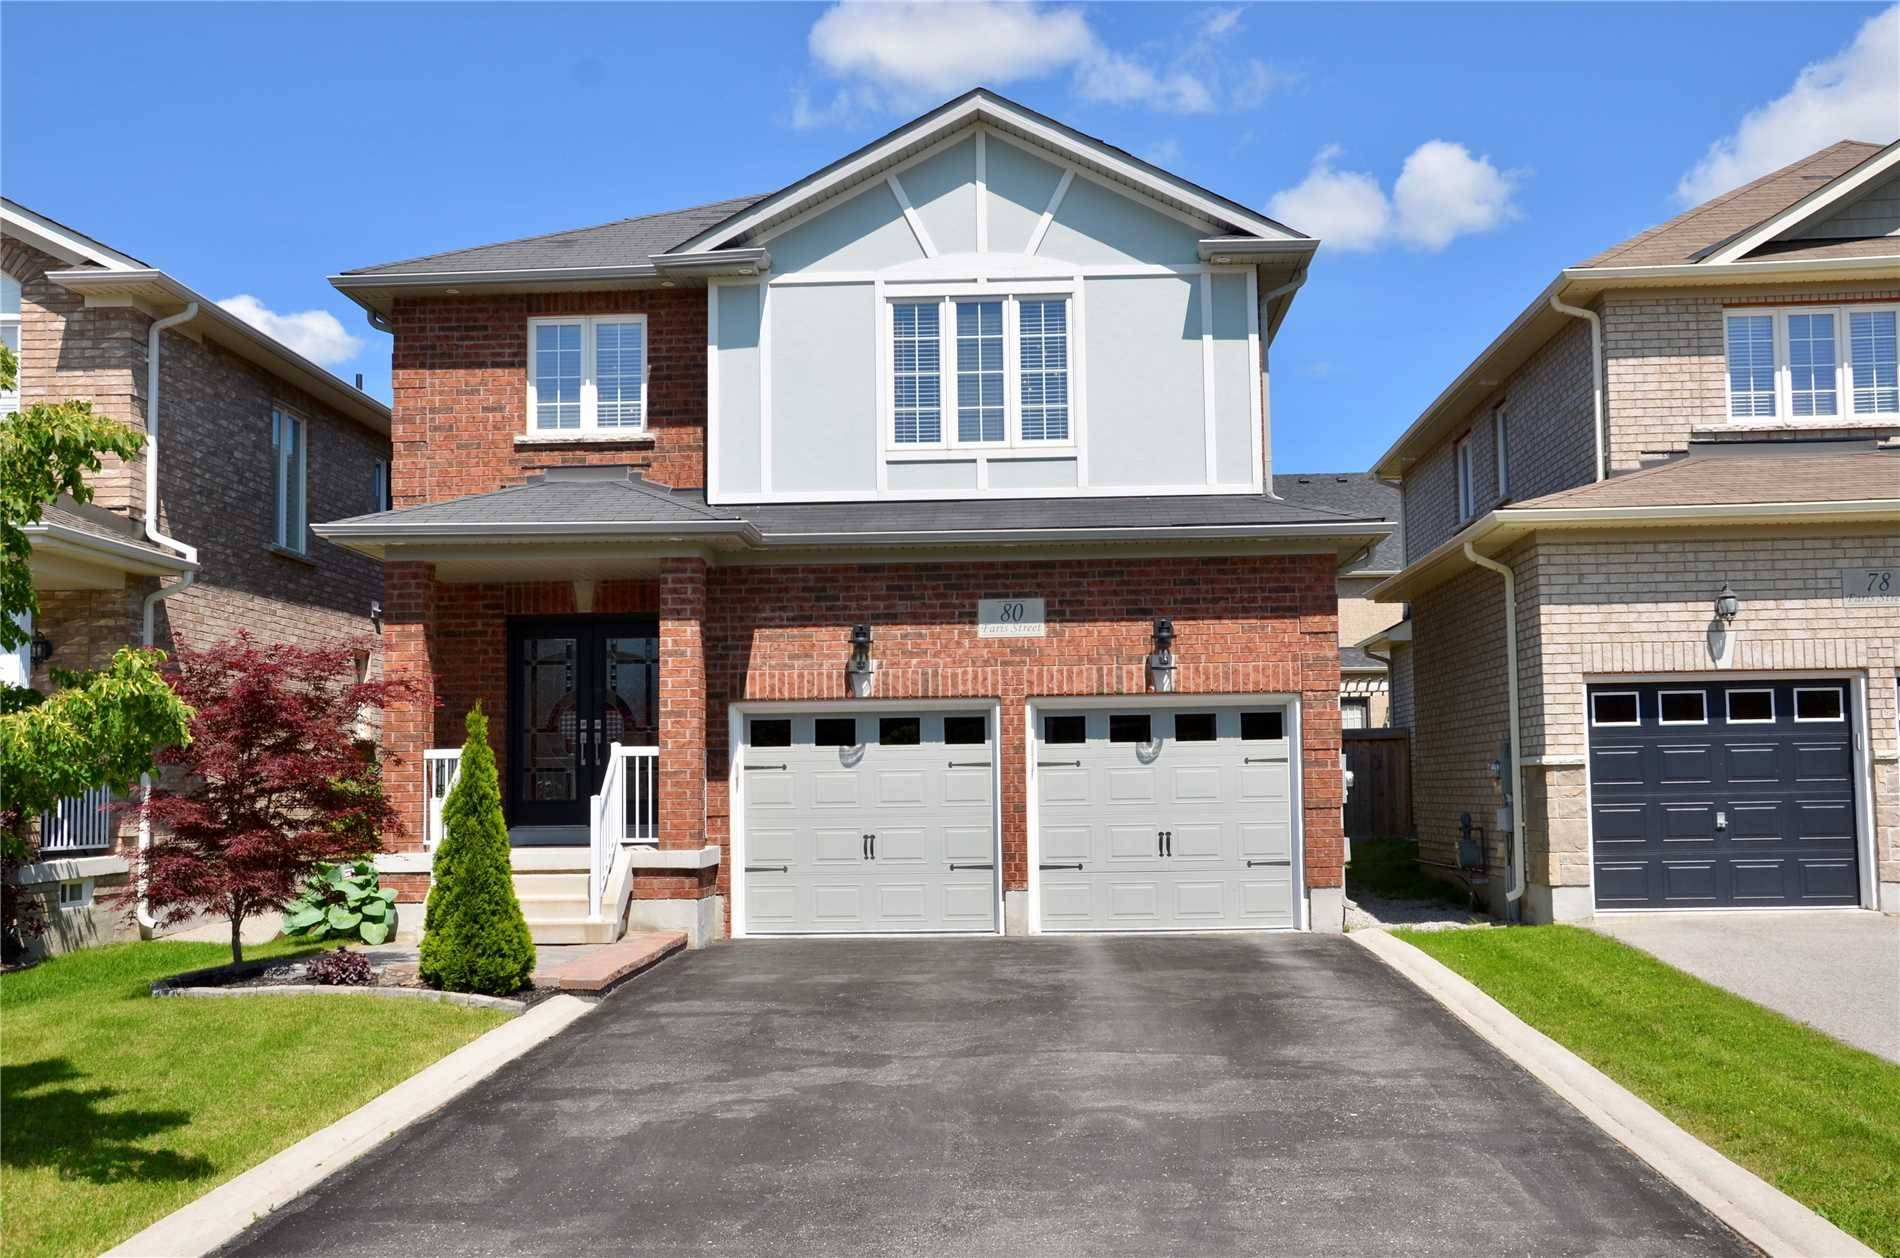 House for sale at 80 Faris St Bradford West Gwillimbury Ontario - MLS: N4460971